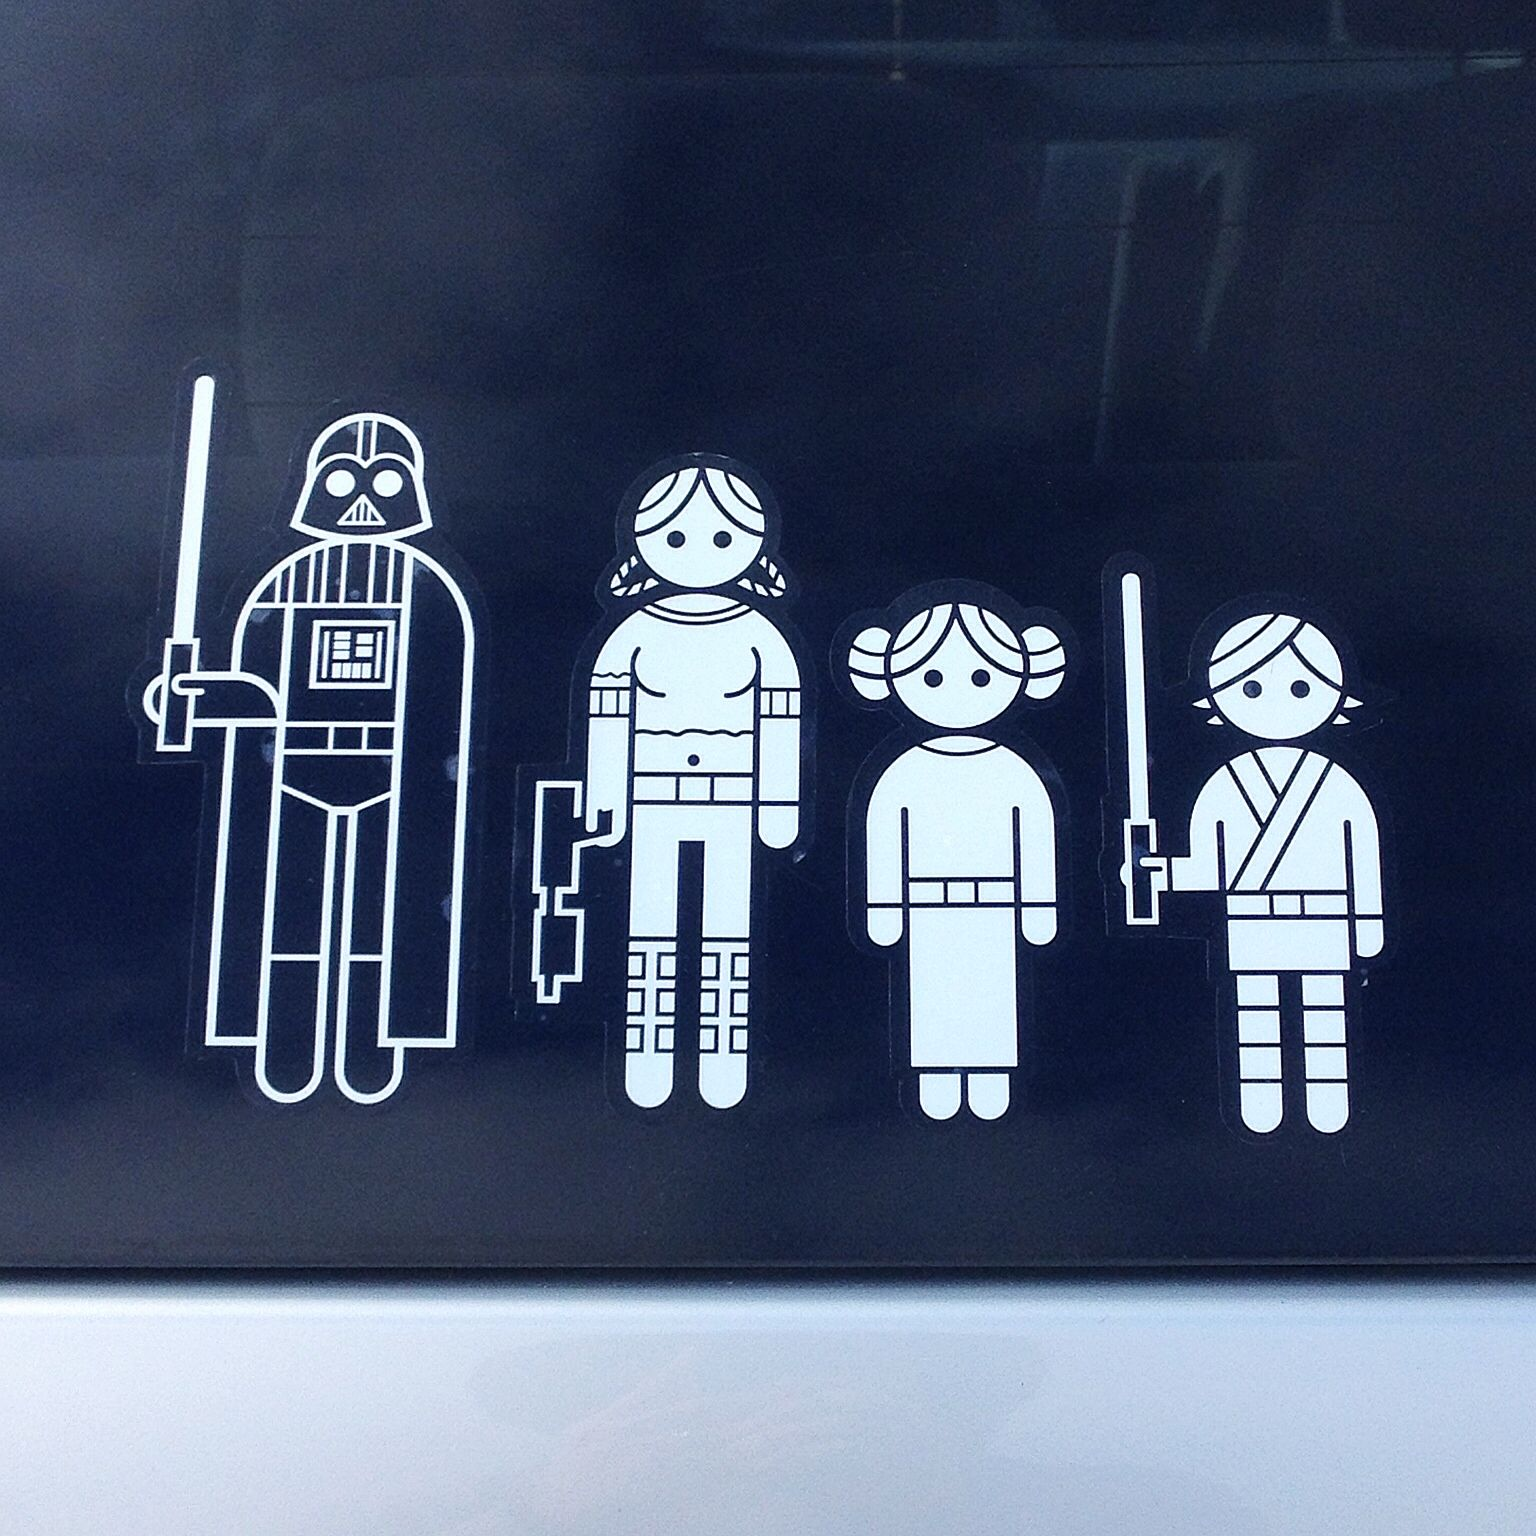 Star Wars Family Stick Family Pinterest Star - Vinyl decal stickers for carsbest car decals images on pinterest car decals family